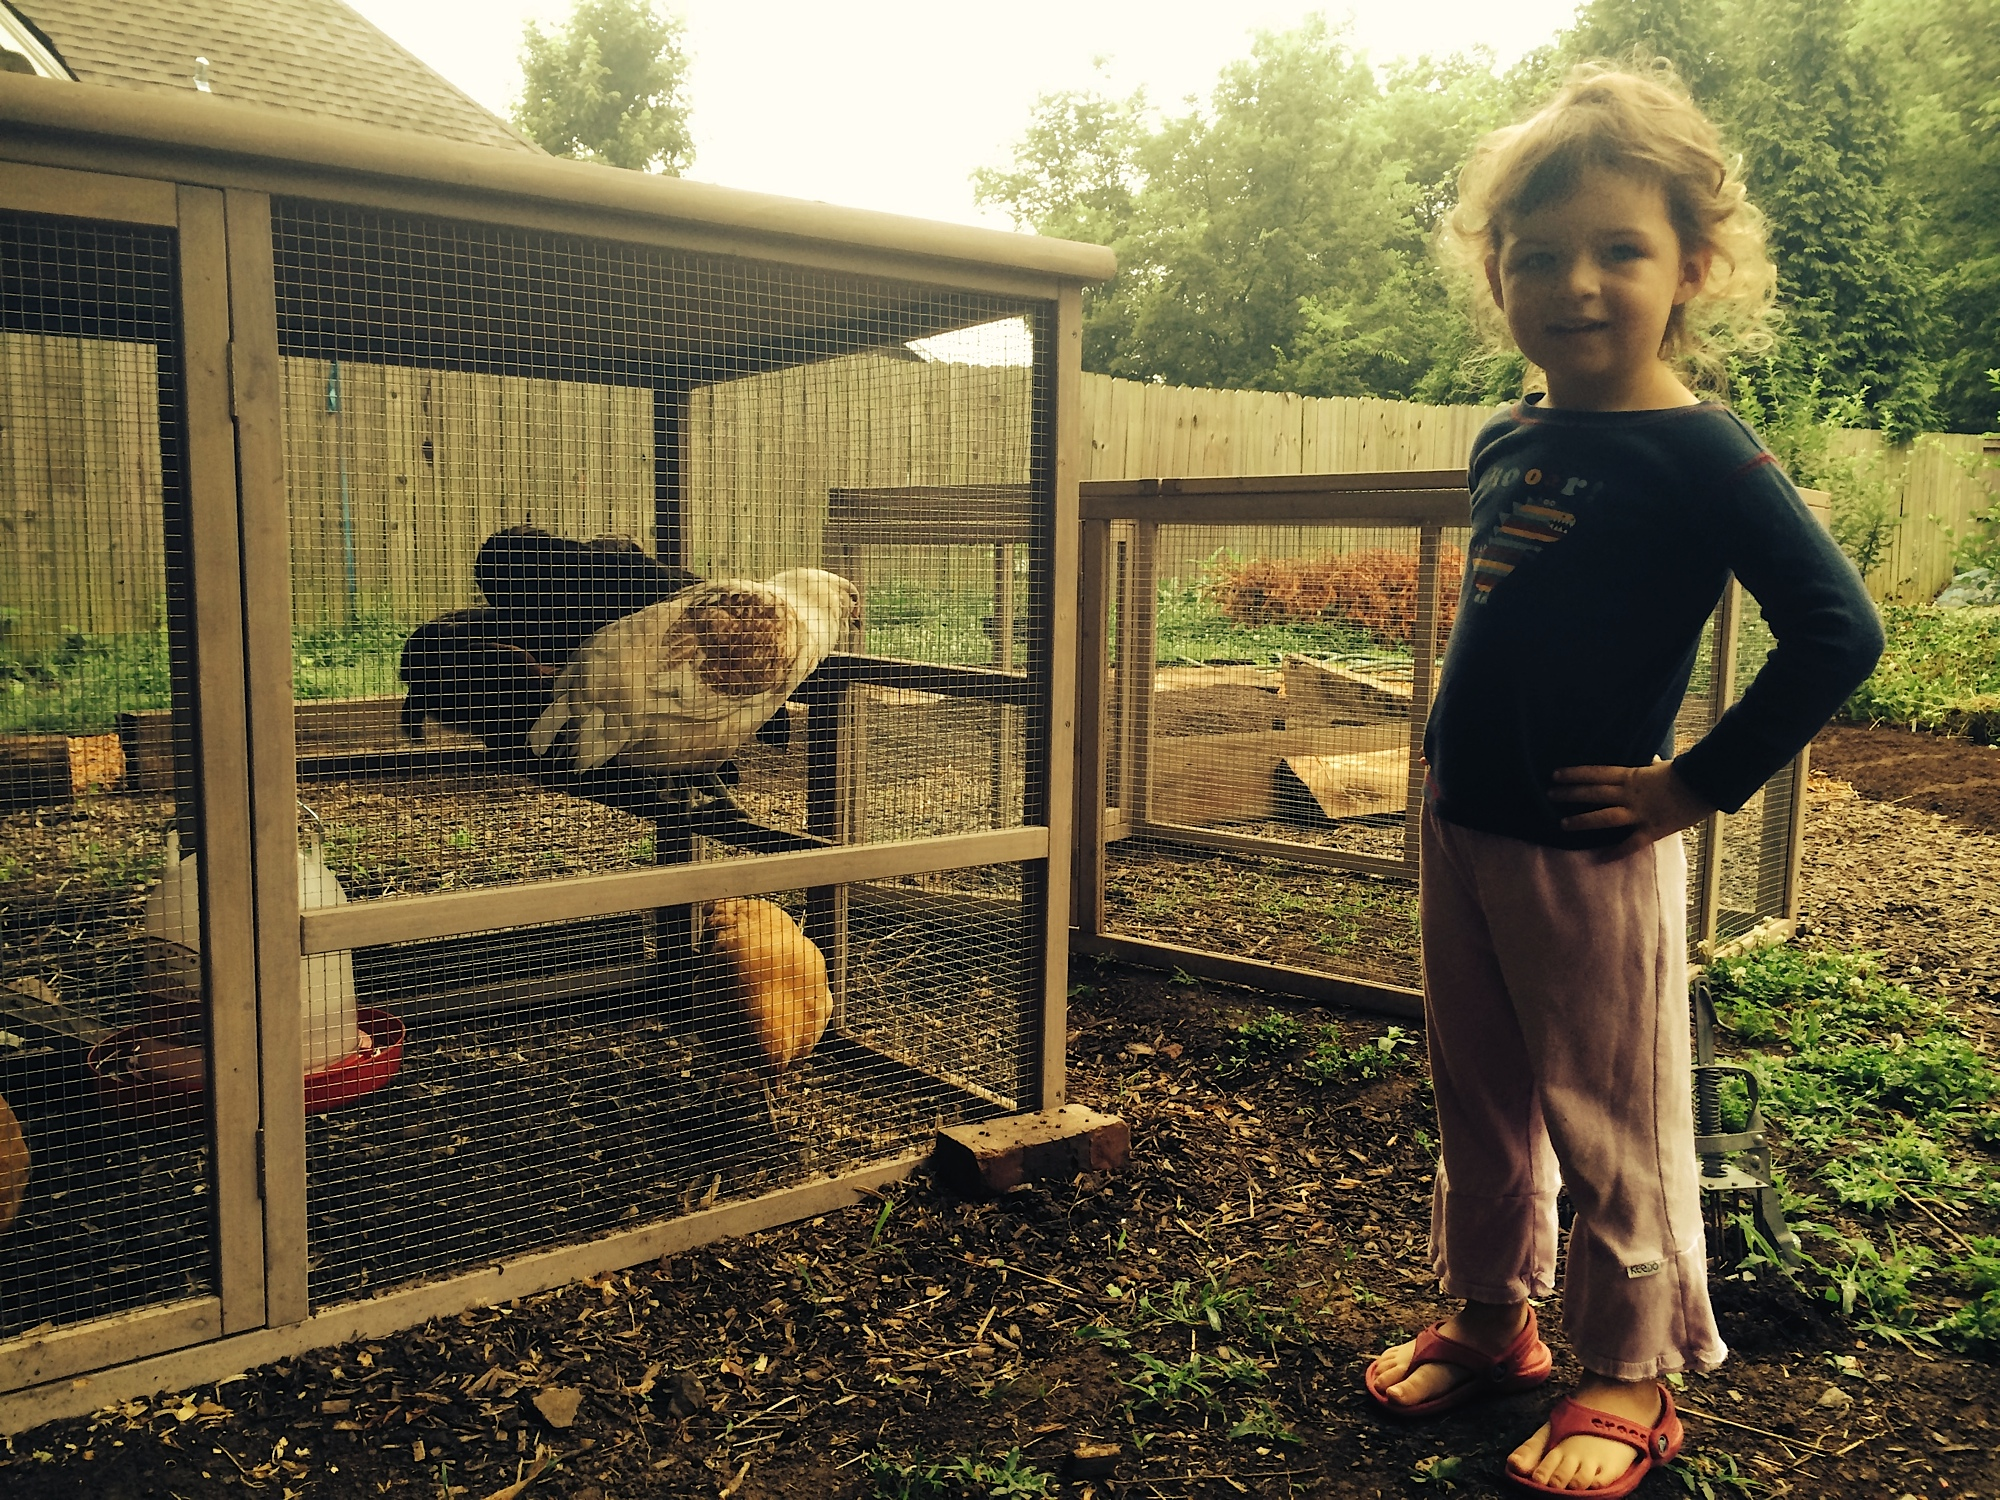 Starting early, Susannah's daughter poses with the chickens.